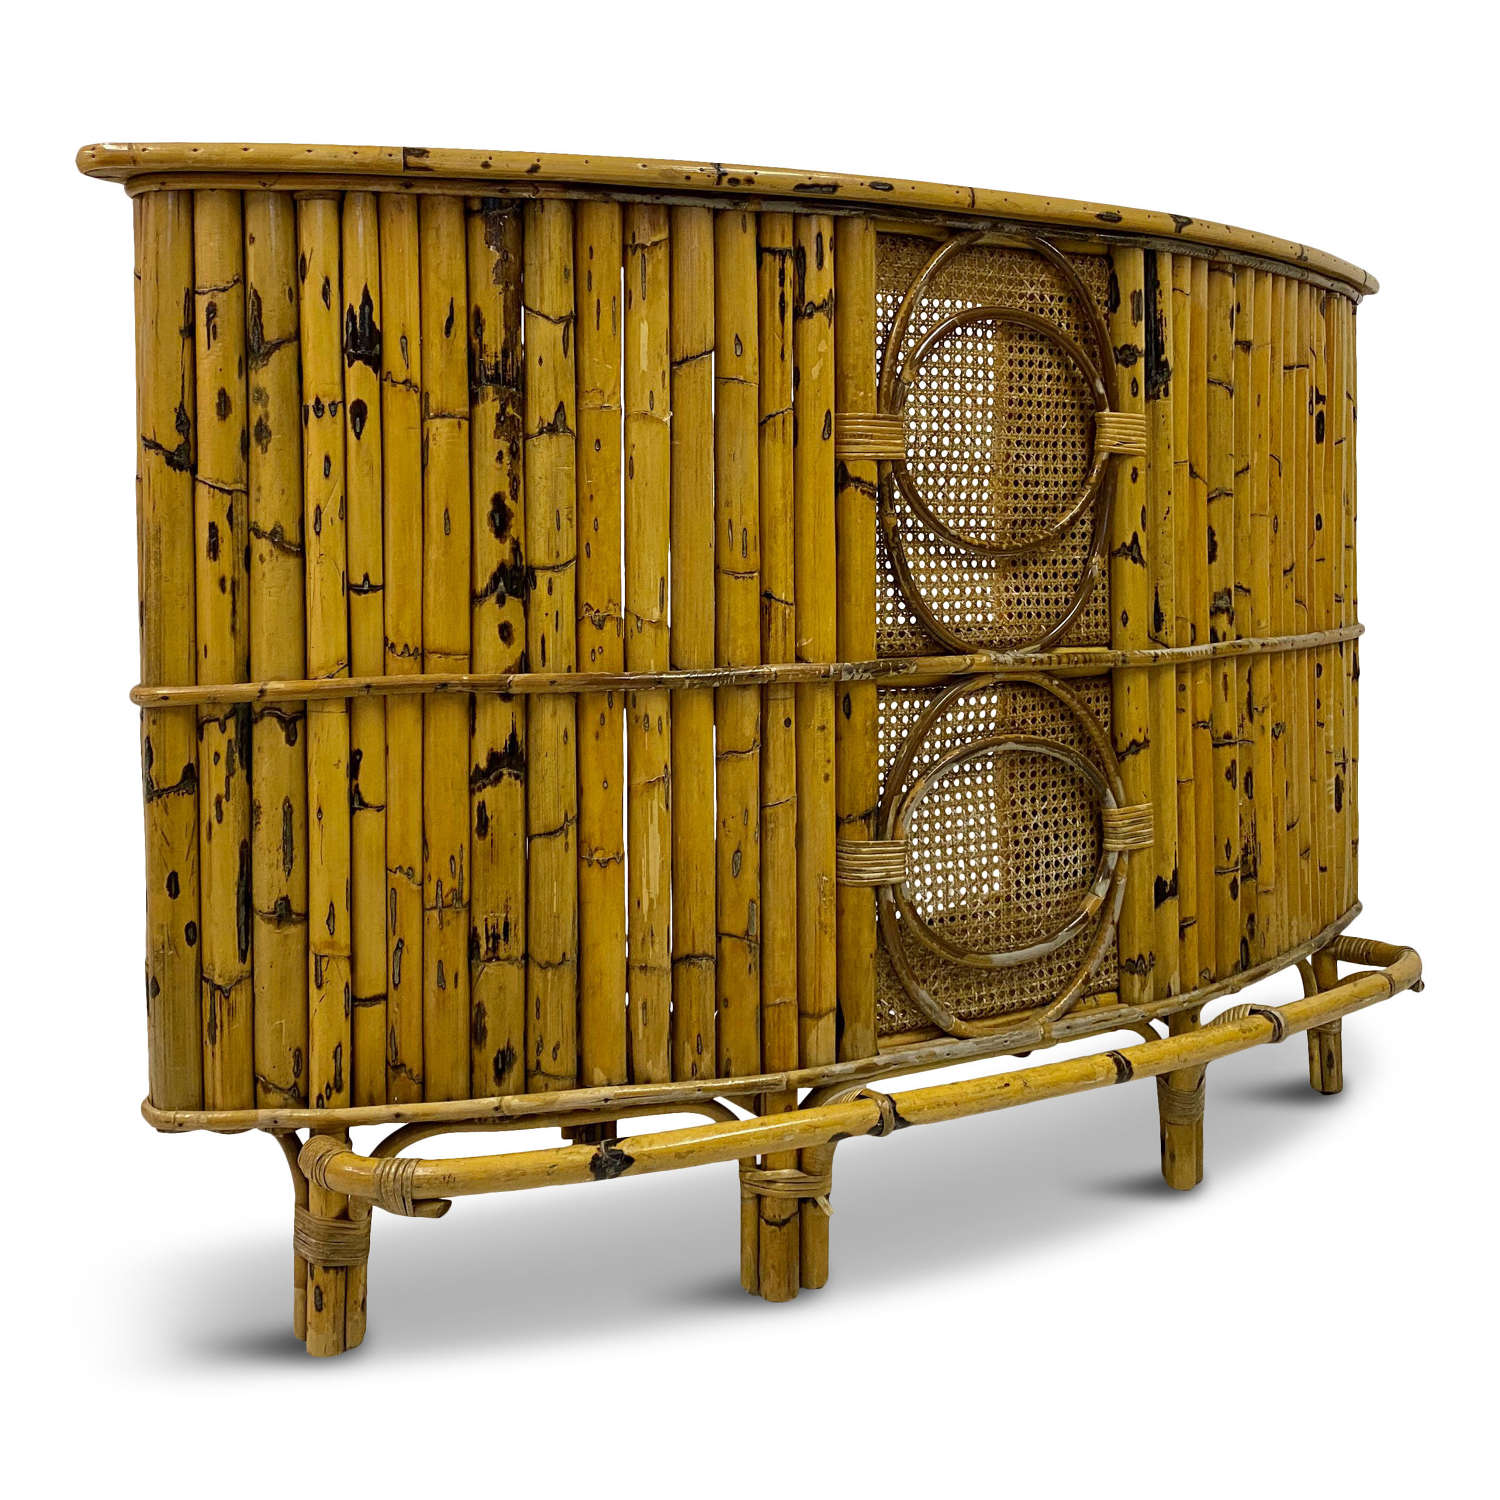 1970s Italian Bamboo and Rattan Cocktail Bar